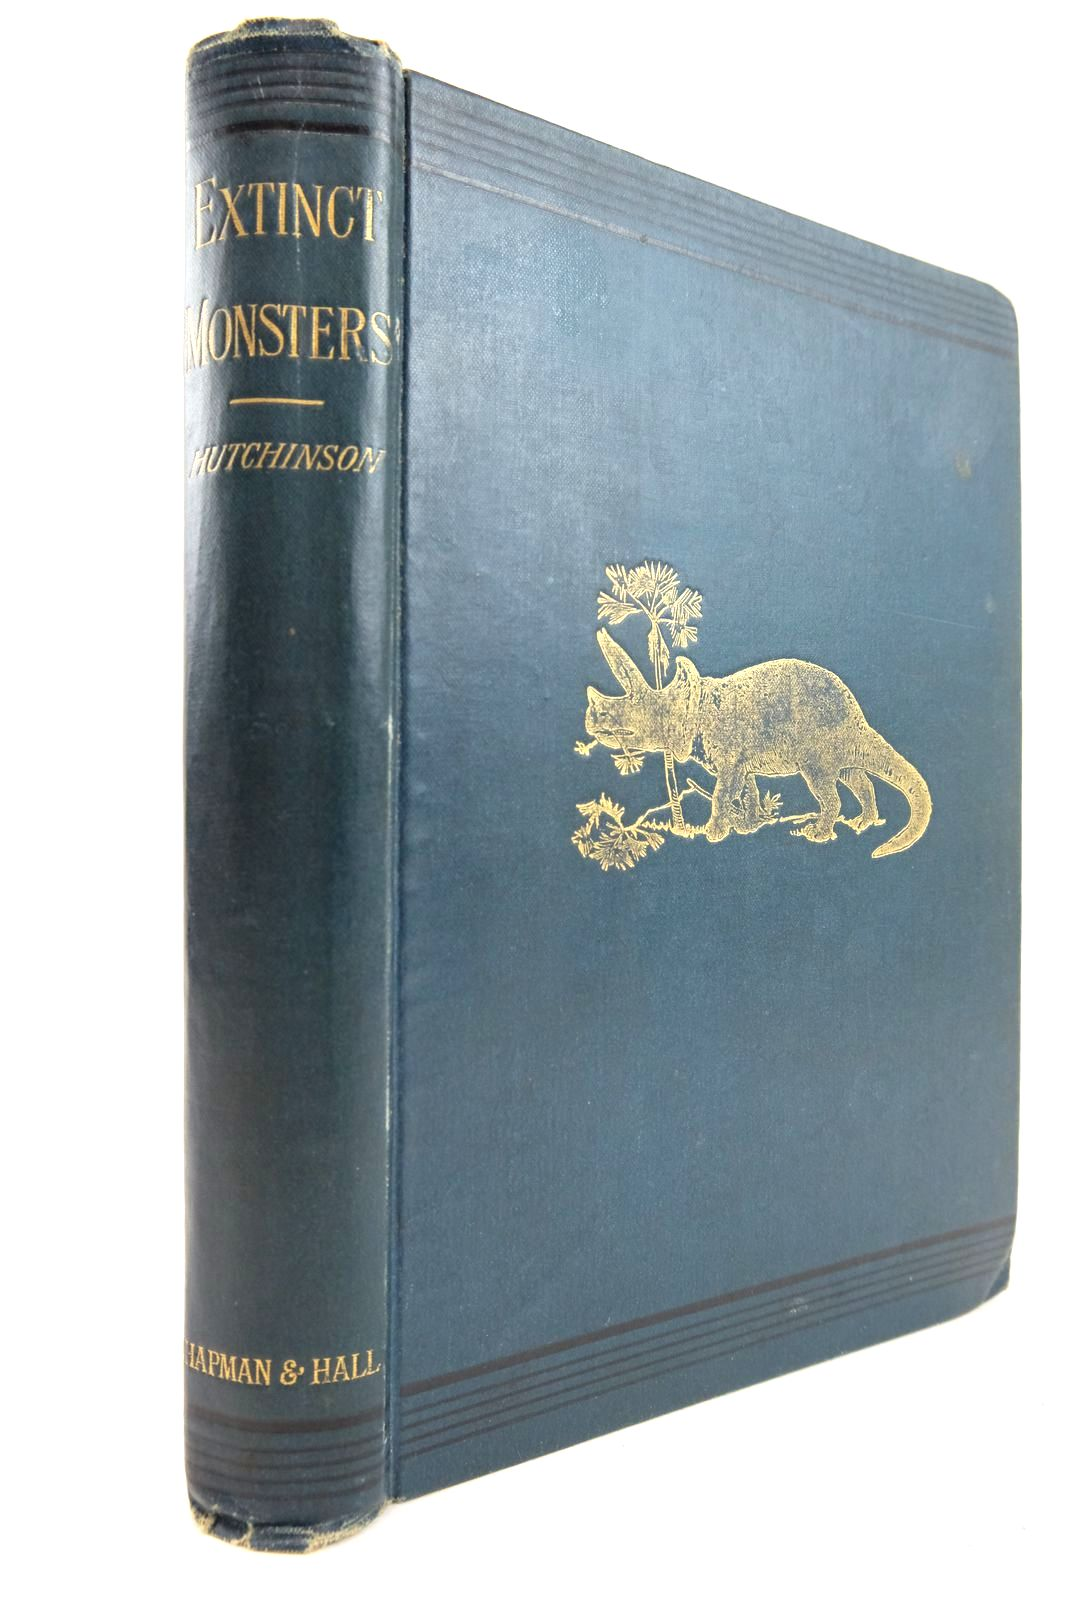 Photo of EXTINCT MONSTERS written by Hutchinson, H.N. illustrated by Smit, J. et al., published by Chapman & Dodd Ltd. (STOCK CODE: 2133150)  for sale by Stella & Rose's Books